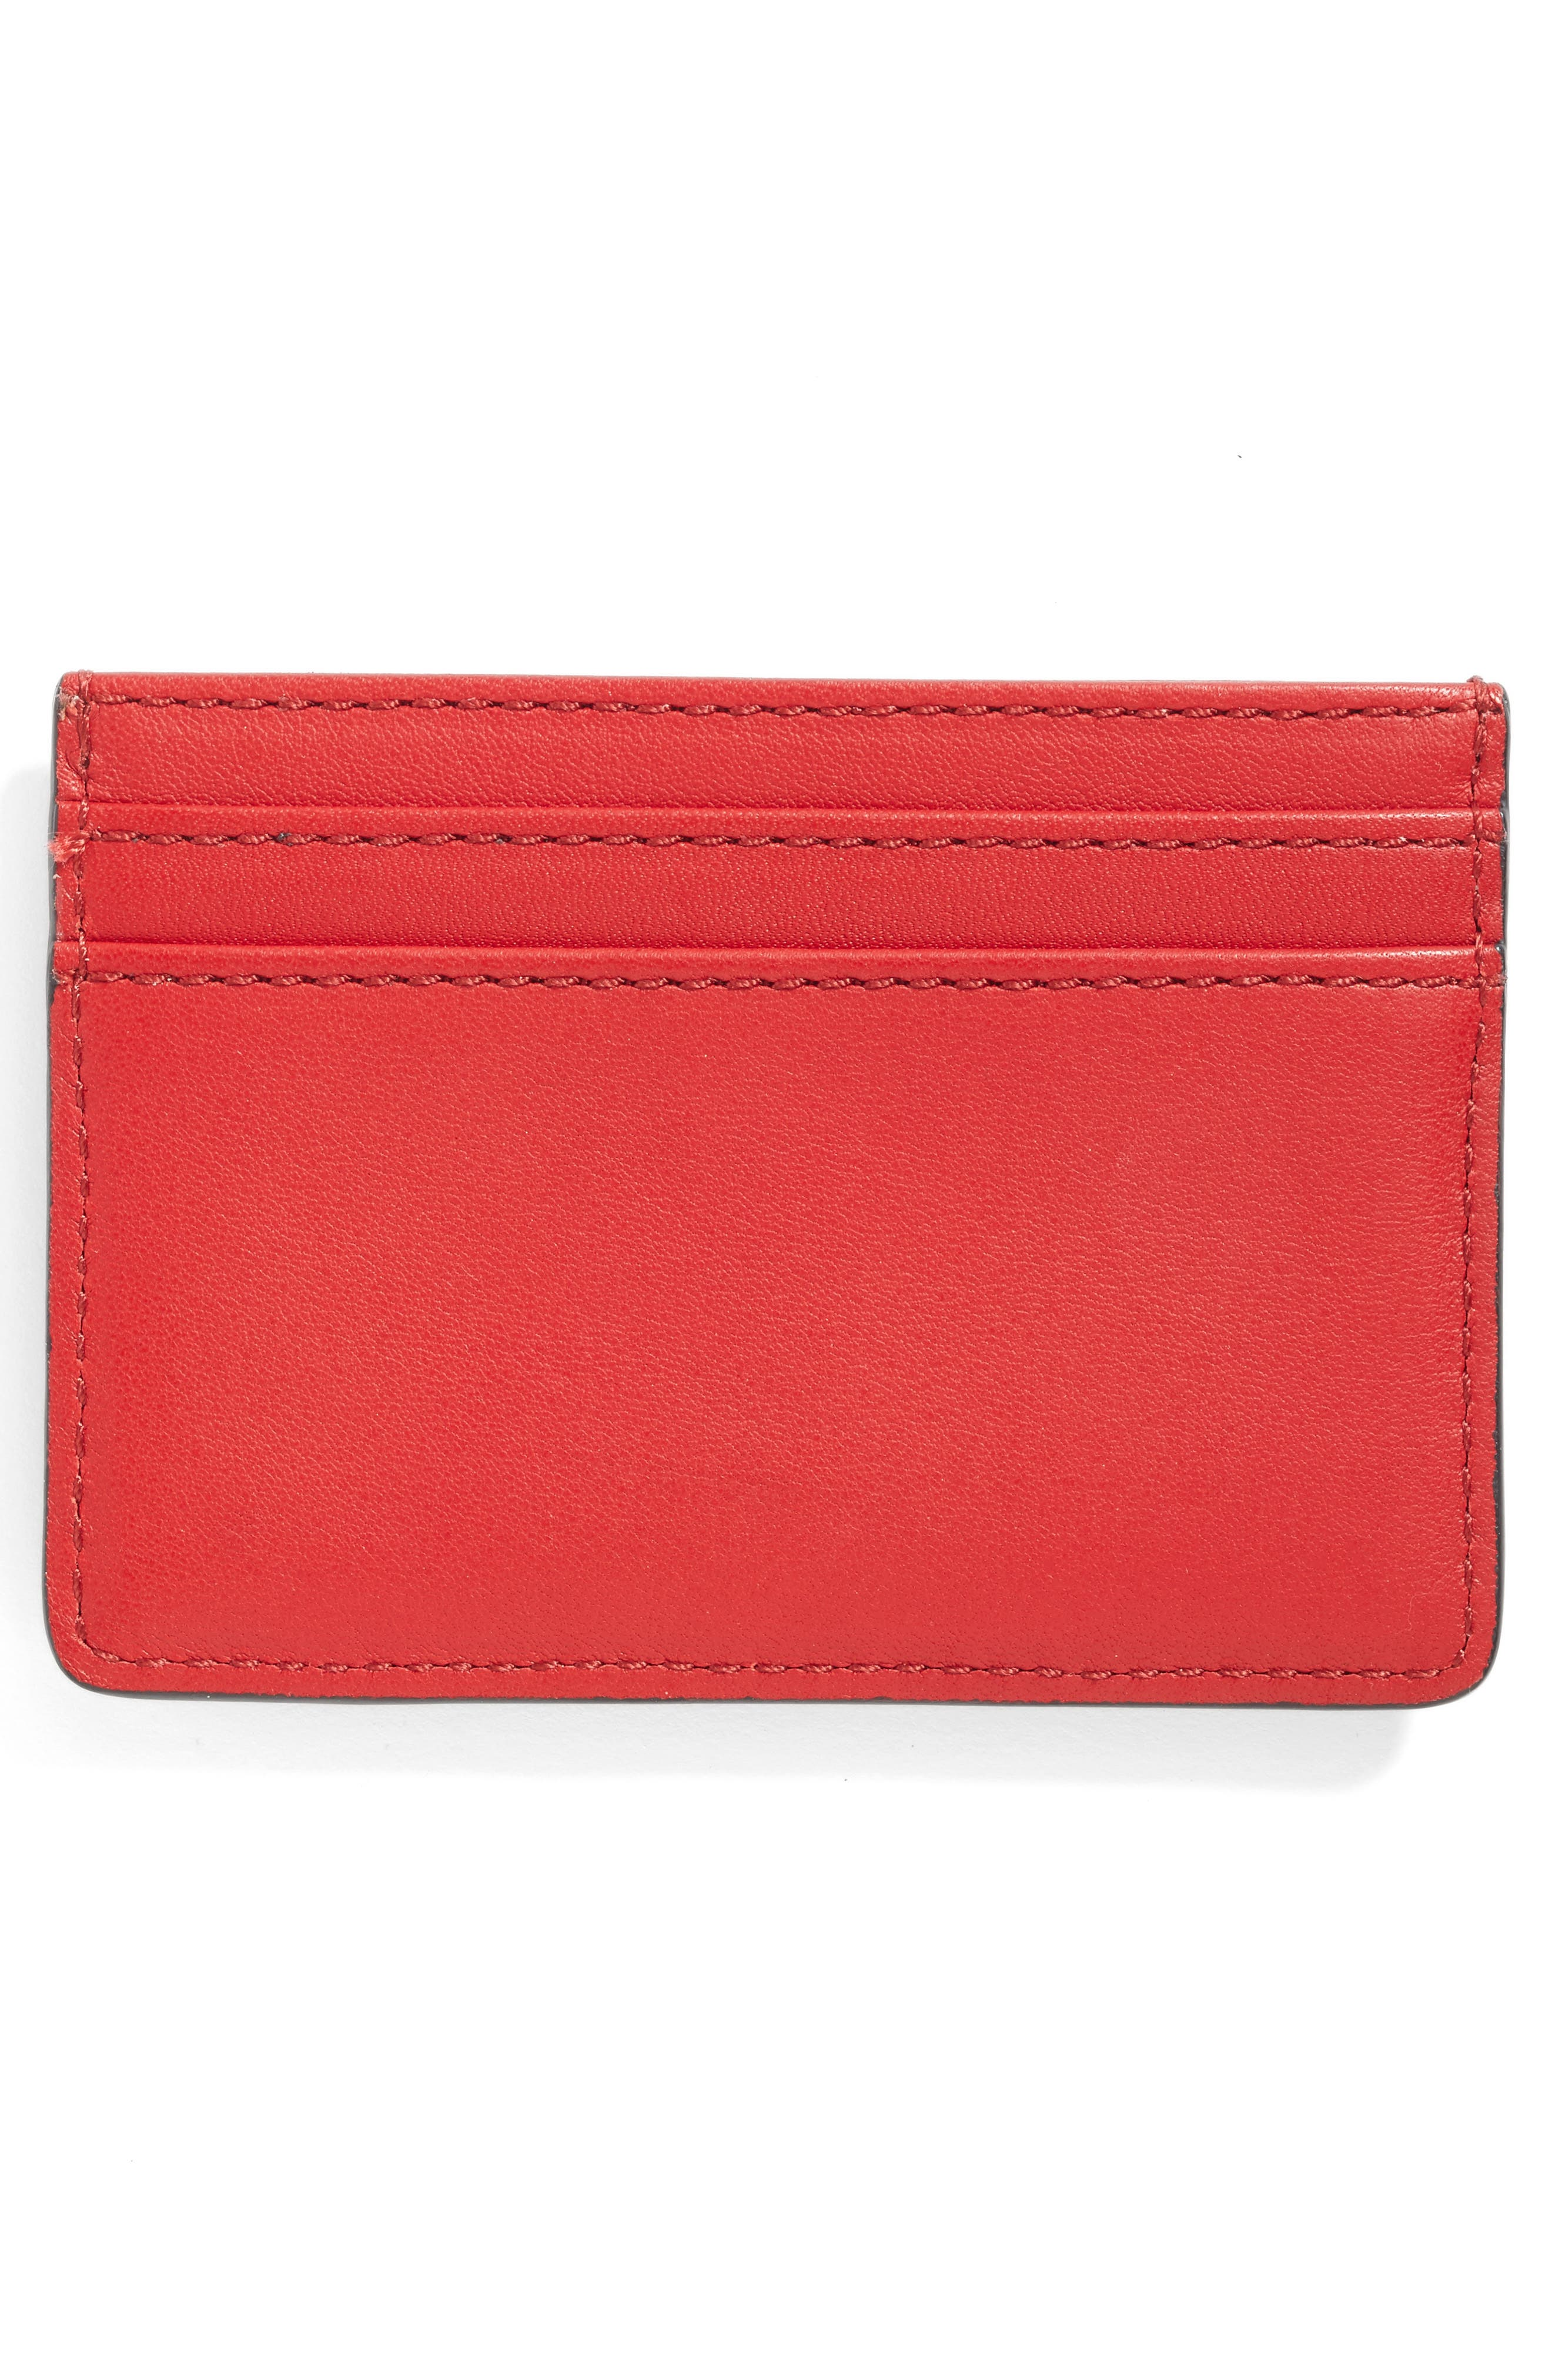 Rooster Leather Card Case,                             Alternate thumbnail 3, color,                             647